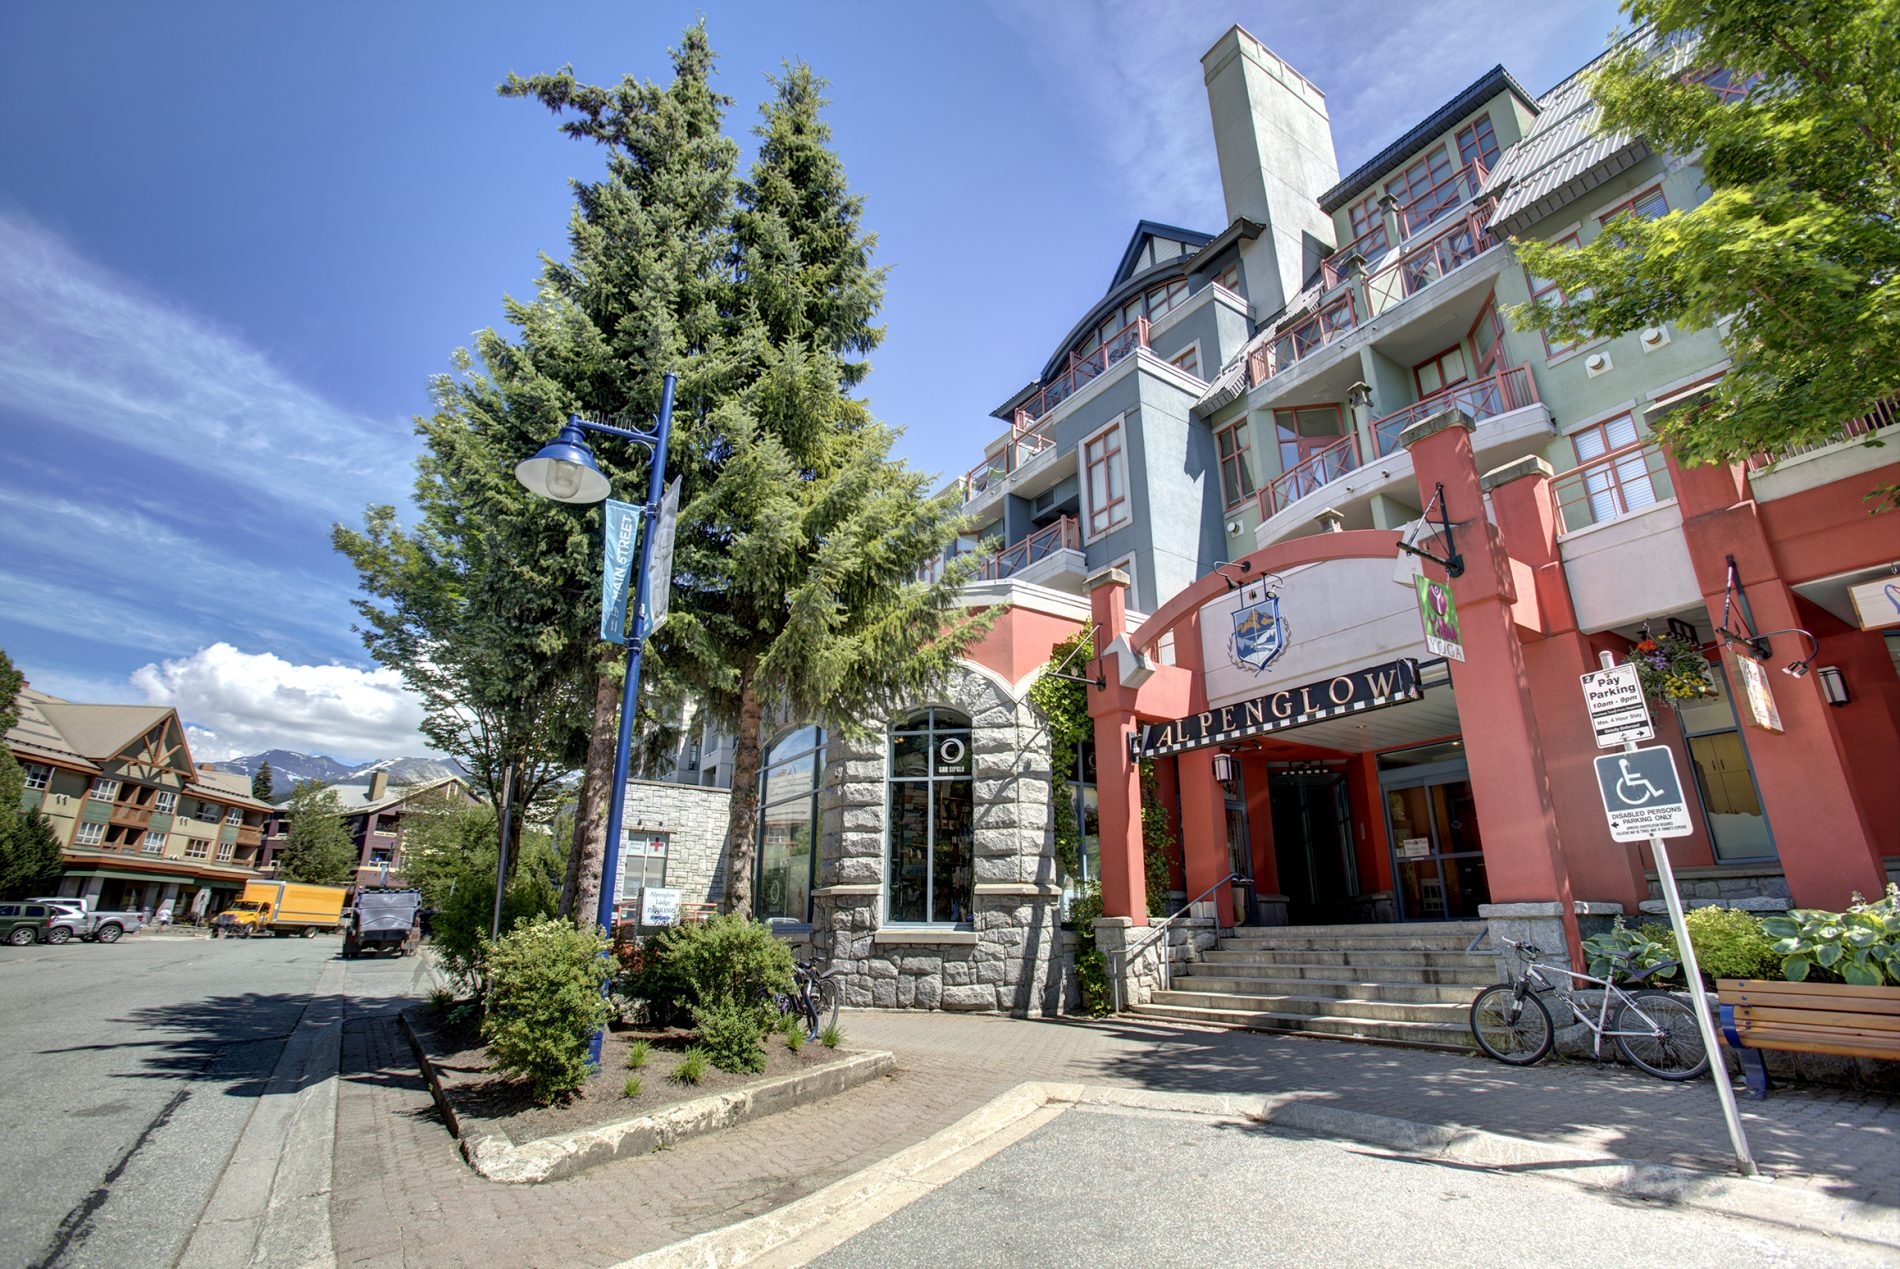 Featured Whistler Real Estate Listings - Alpenglow